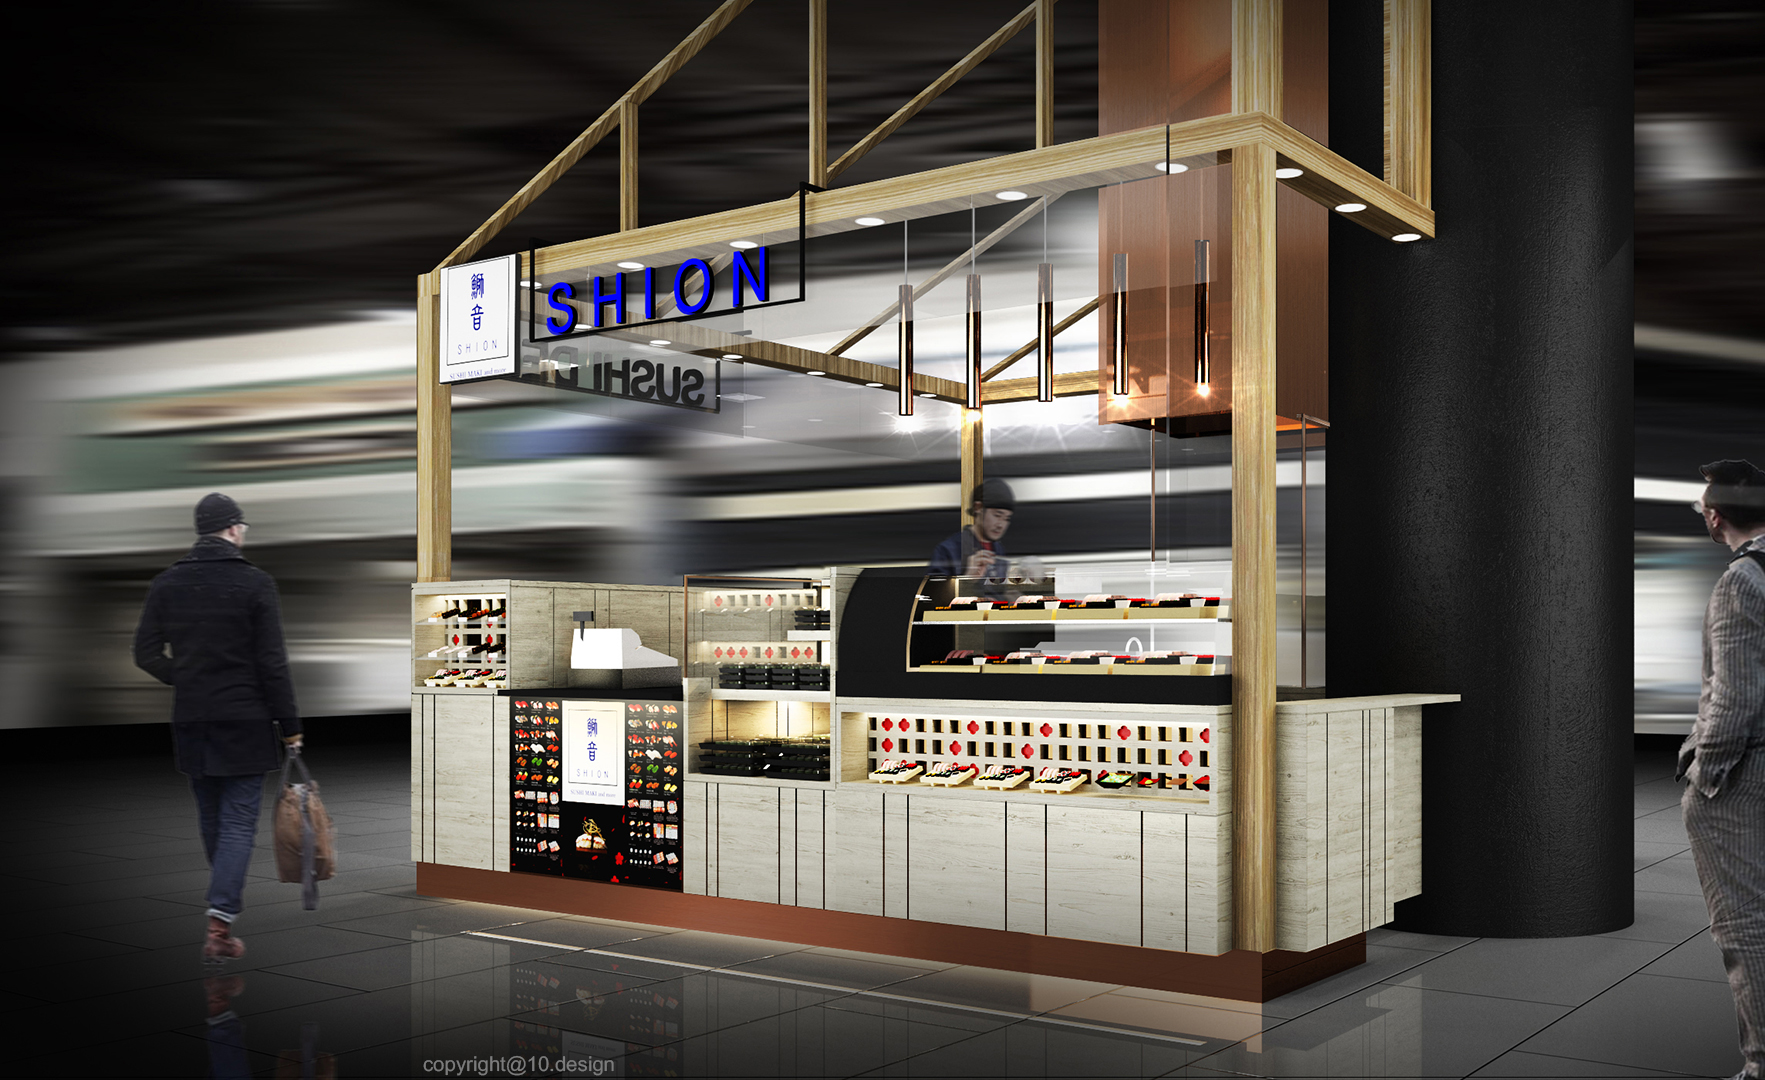 10 design shion sushi bar japanese booth takeaway interior emquartier bangkok 01